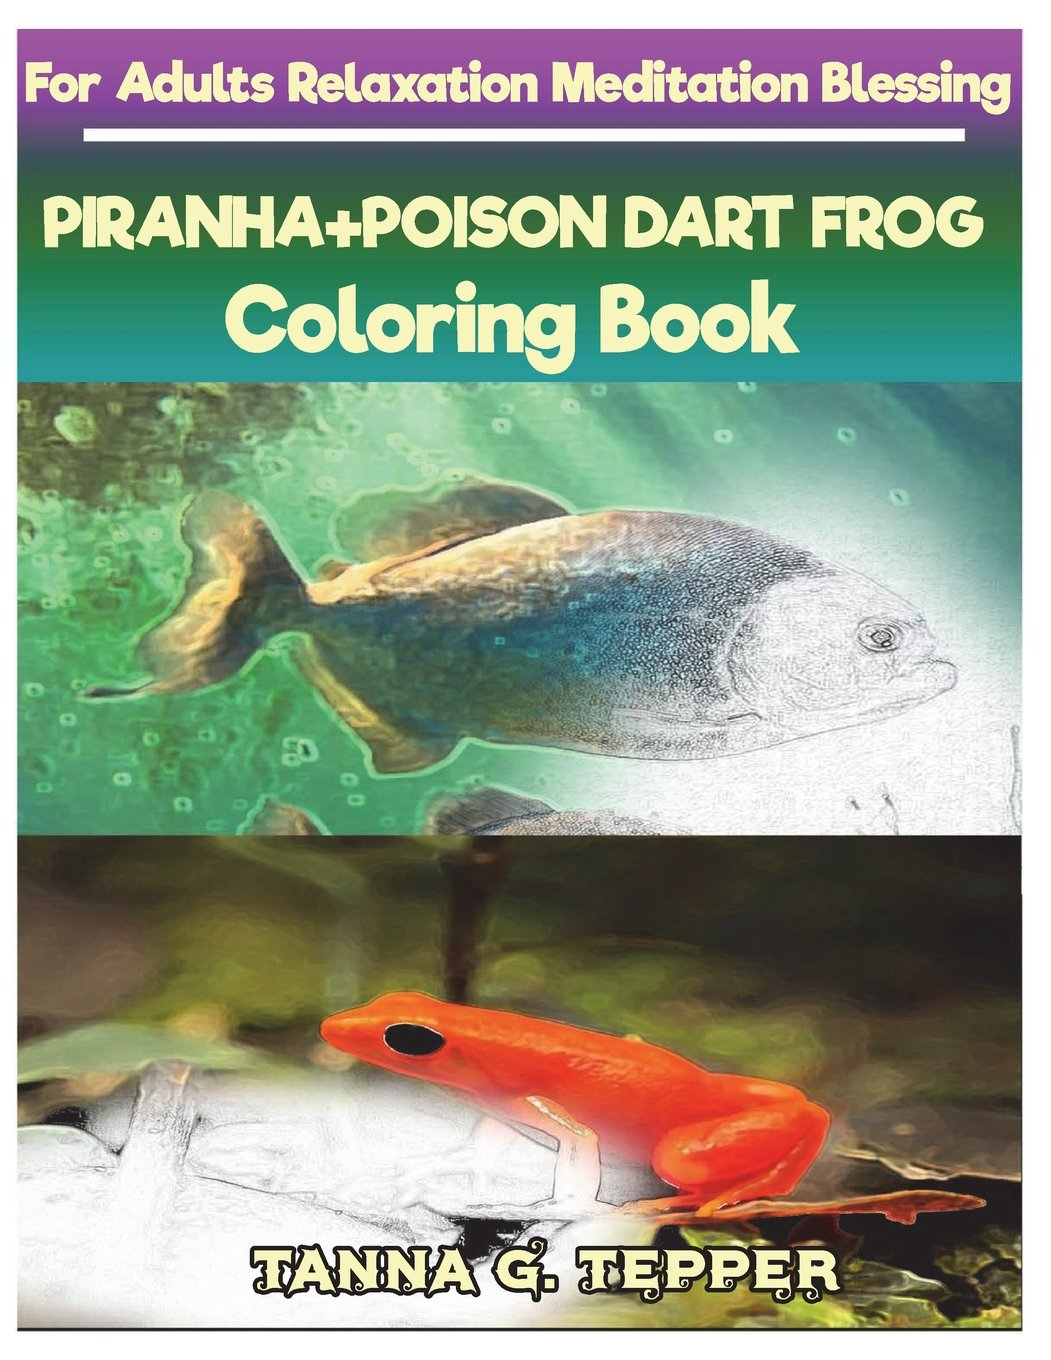 Read Online PIRANHA+POISON DART FROG Coloring book for Adults Relaxation Meditation: Sketch coloring book Grayscale Pictures pdf